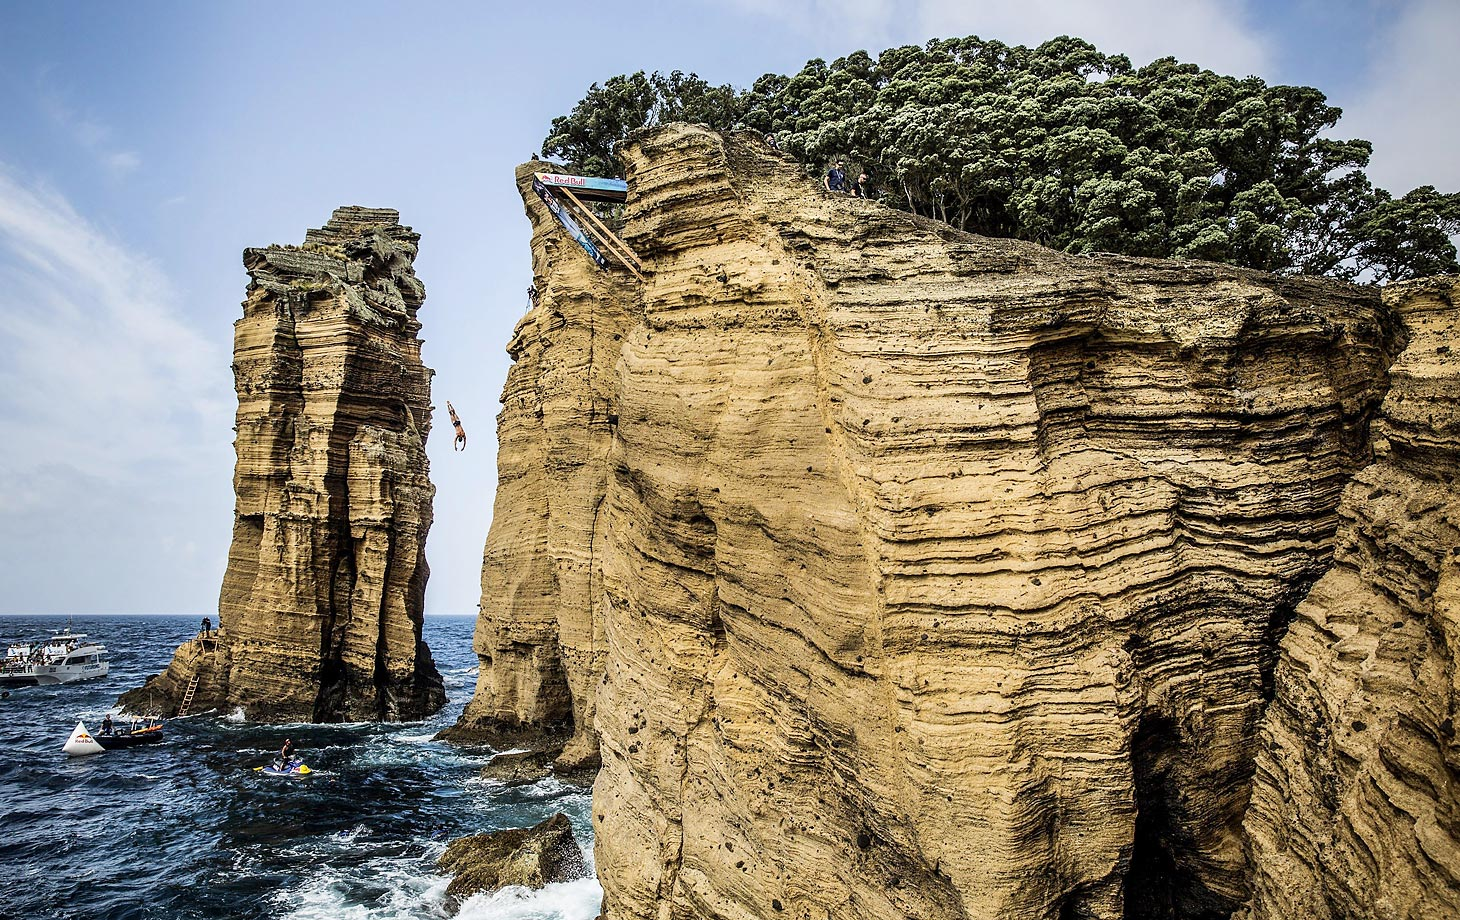 Daring USA cliff diver David Colturi plunges from the 27 metre platform on Islet Vila Franca do Campo during the Red Bull Cliff Diving World Series in Portugal.